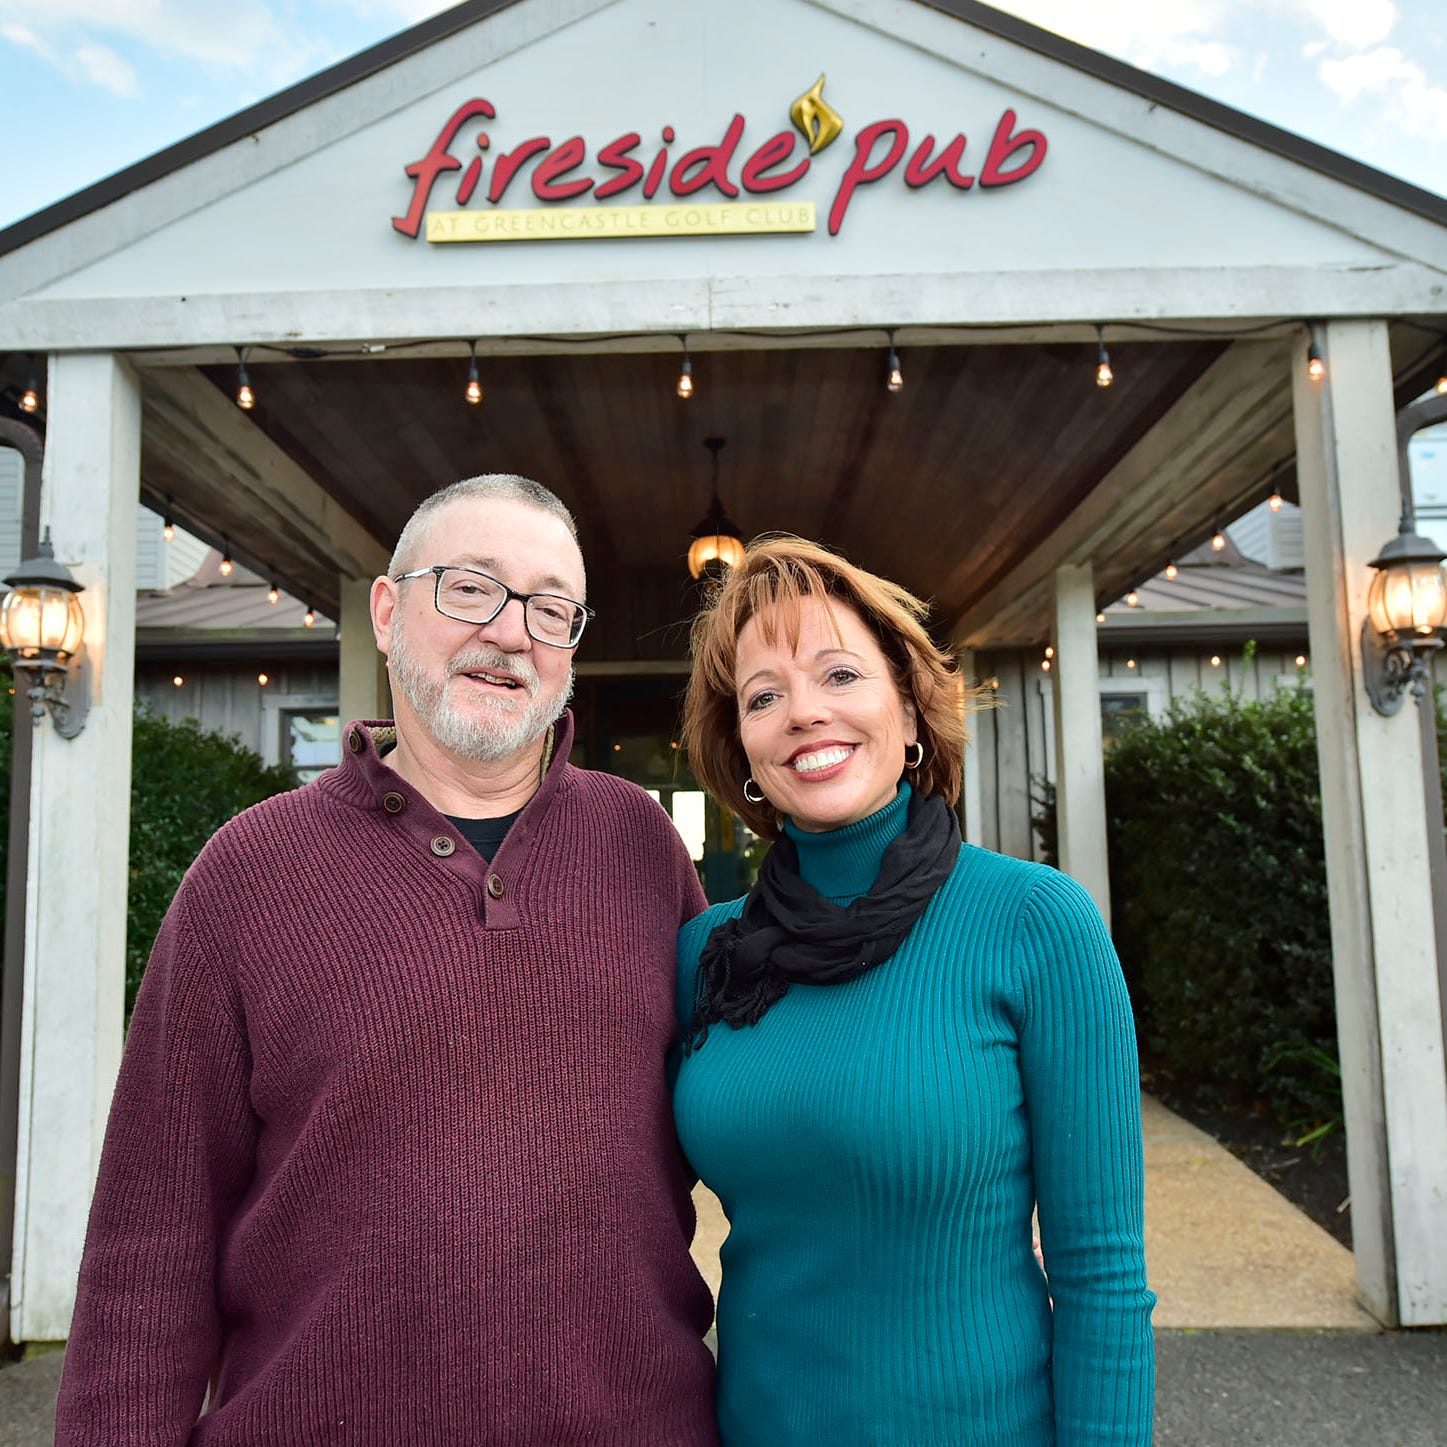 Greencastle Greens and Fireside Pub has new owners, Ron and Beth Powers.